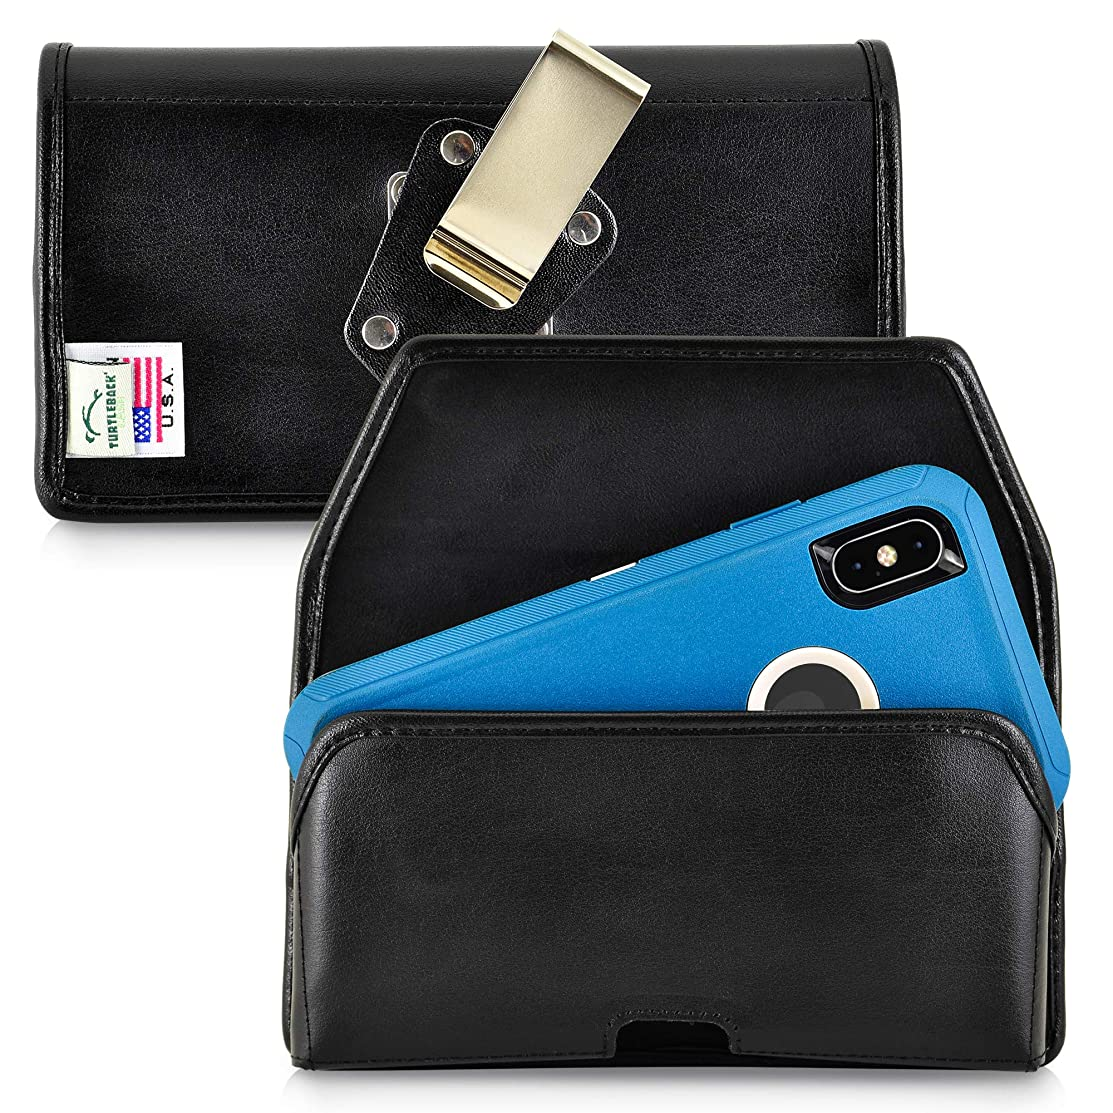 Turtleback Belt Case Designed for iPhone Xs MAX (2018) Fits with OTTERBOX Defender, Black Leather Holster Pouch with Heavy Duty Rotating Belt Clip, Horizontal Made in USA